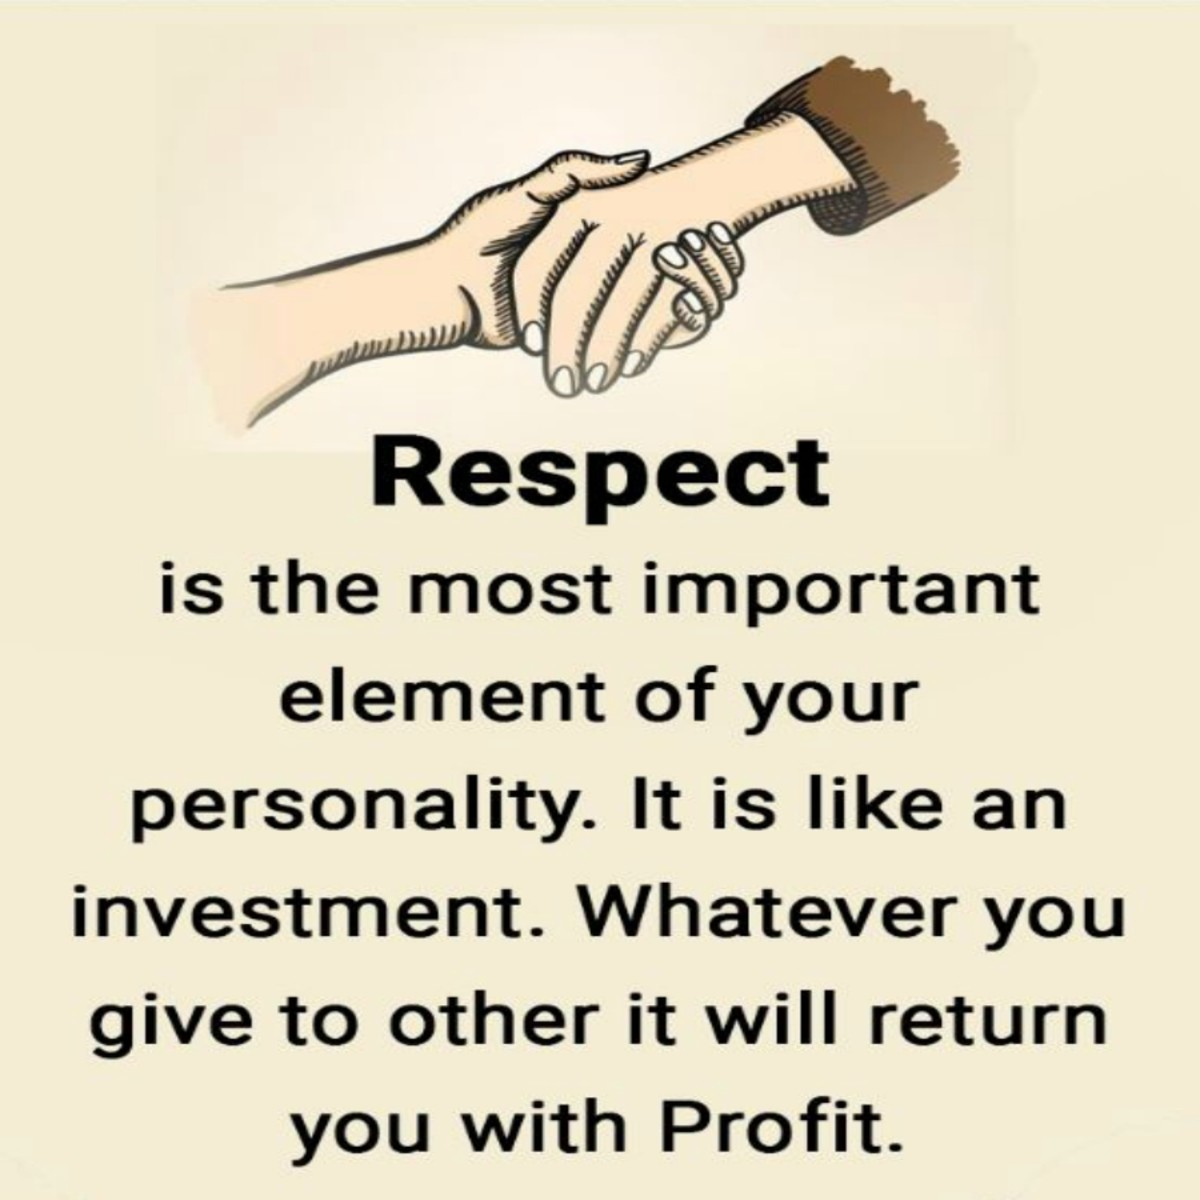 Respect others for who they are